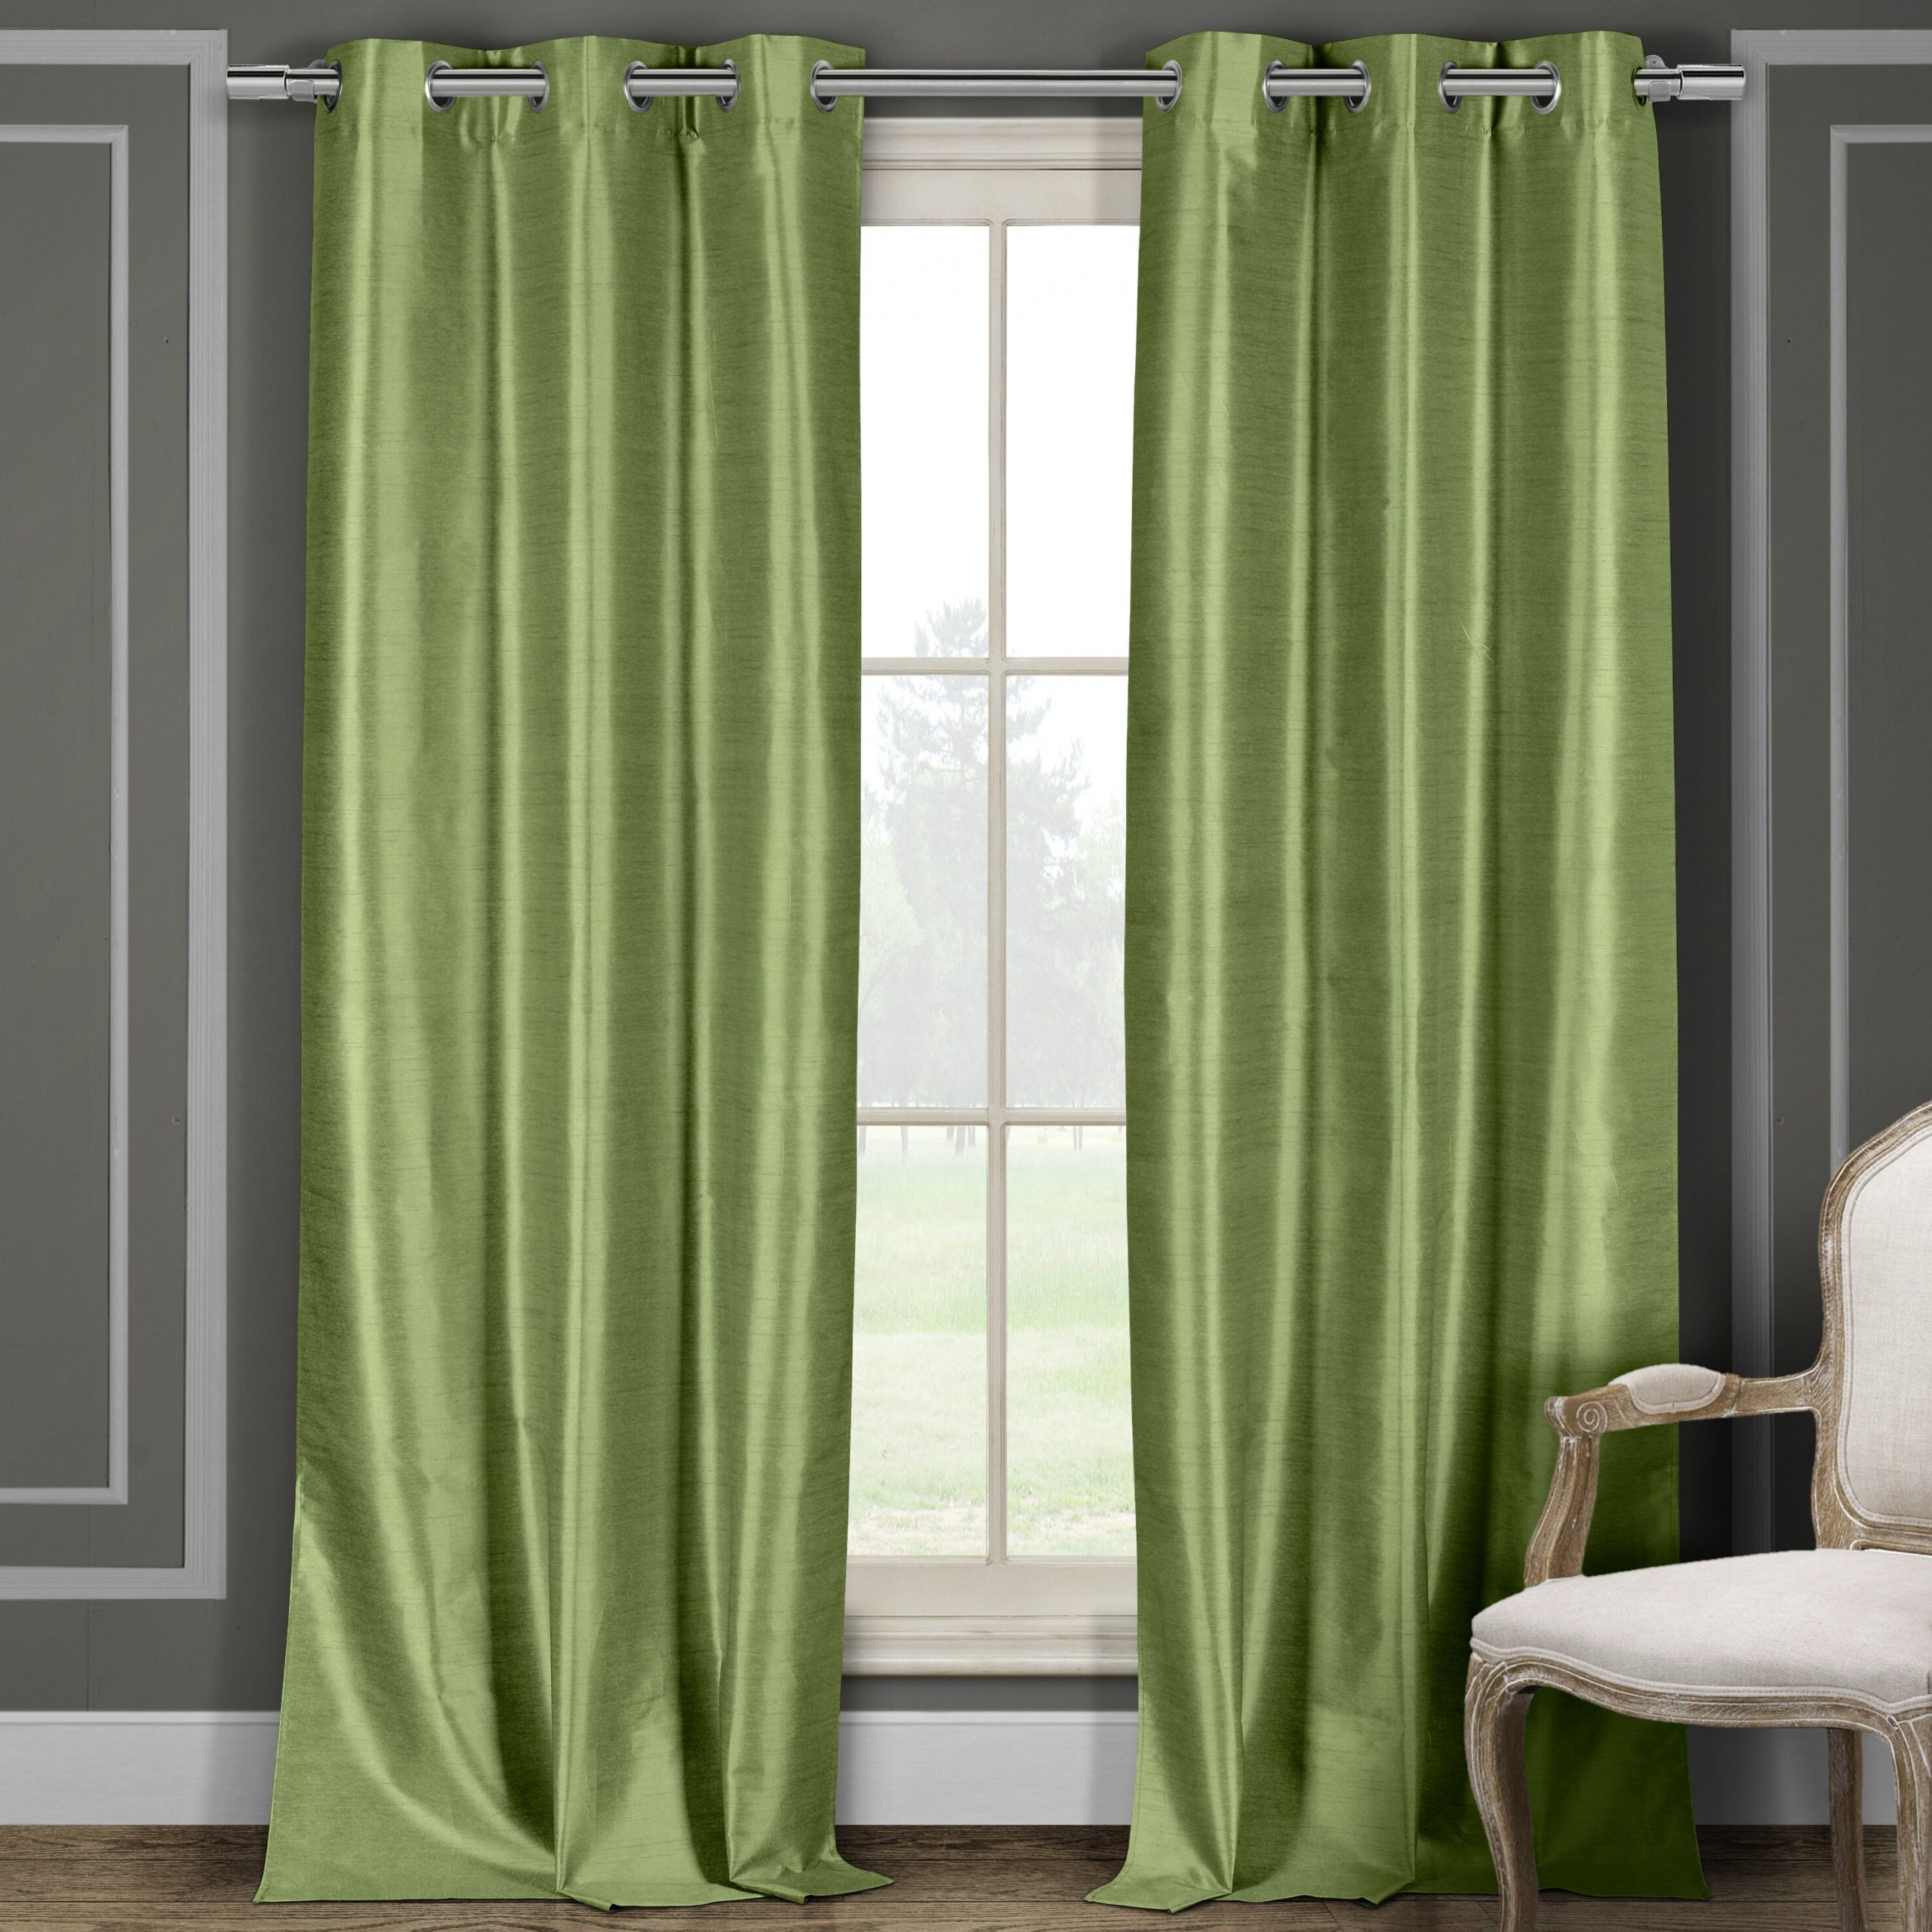 Most Recently Released Overseas Faux Silk Blackout Curtain Panel Pairs In Faux Silk Solid Blackout Grommet Curtain Panels (View 10 of 20)